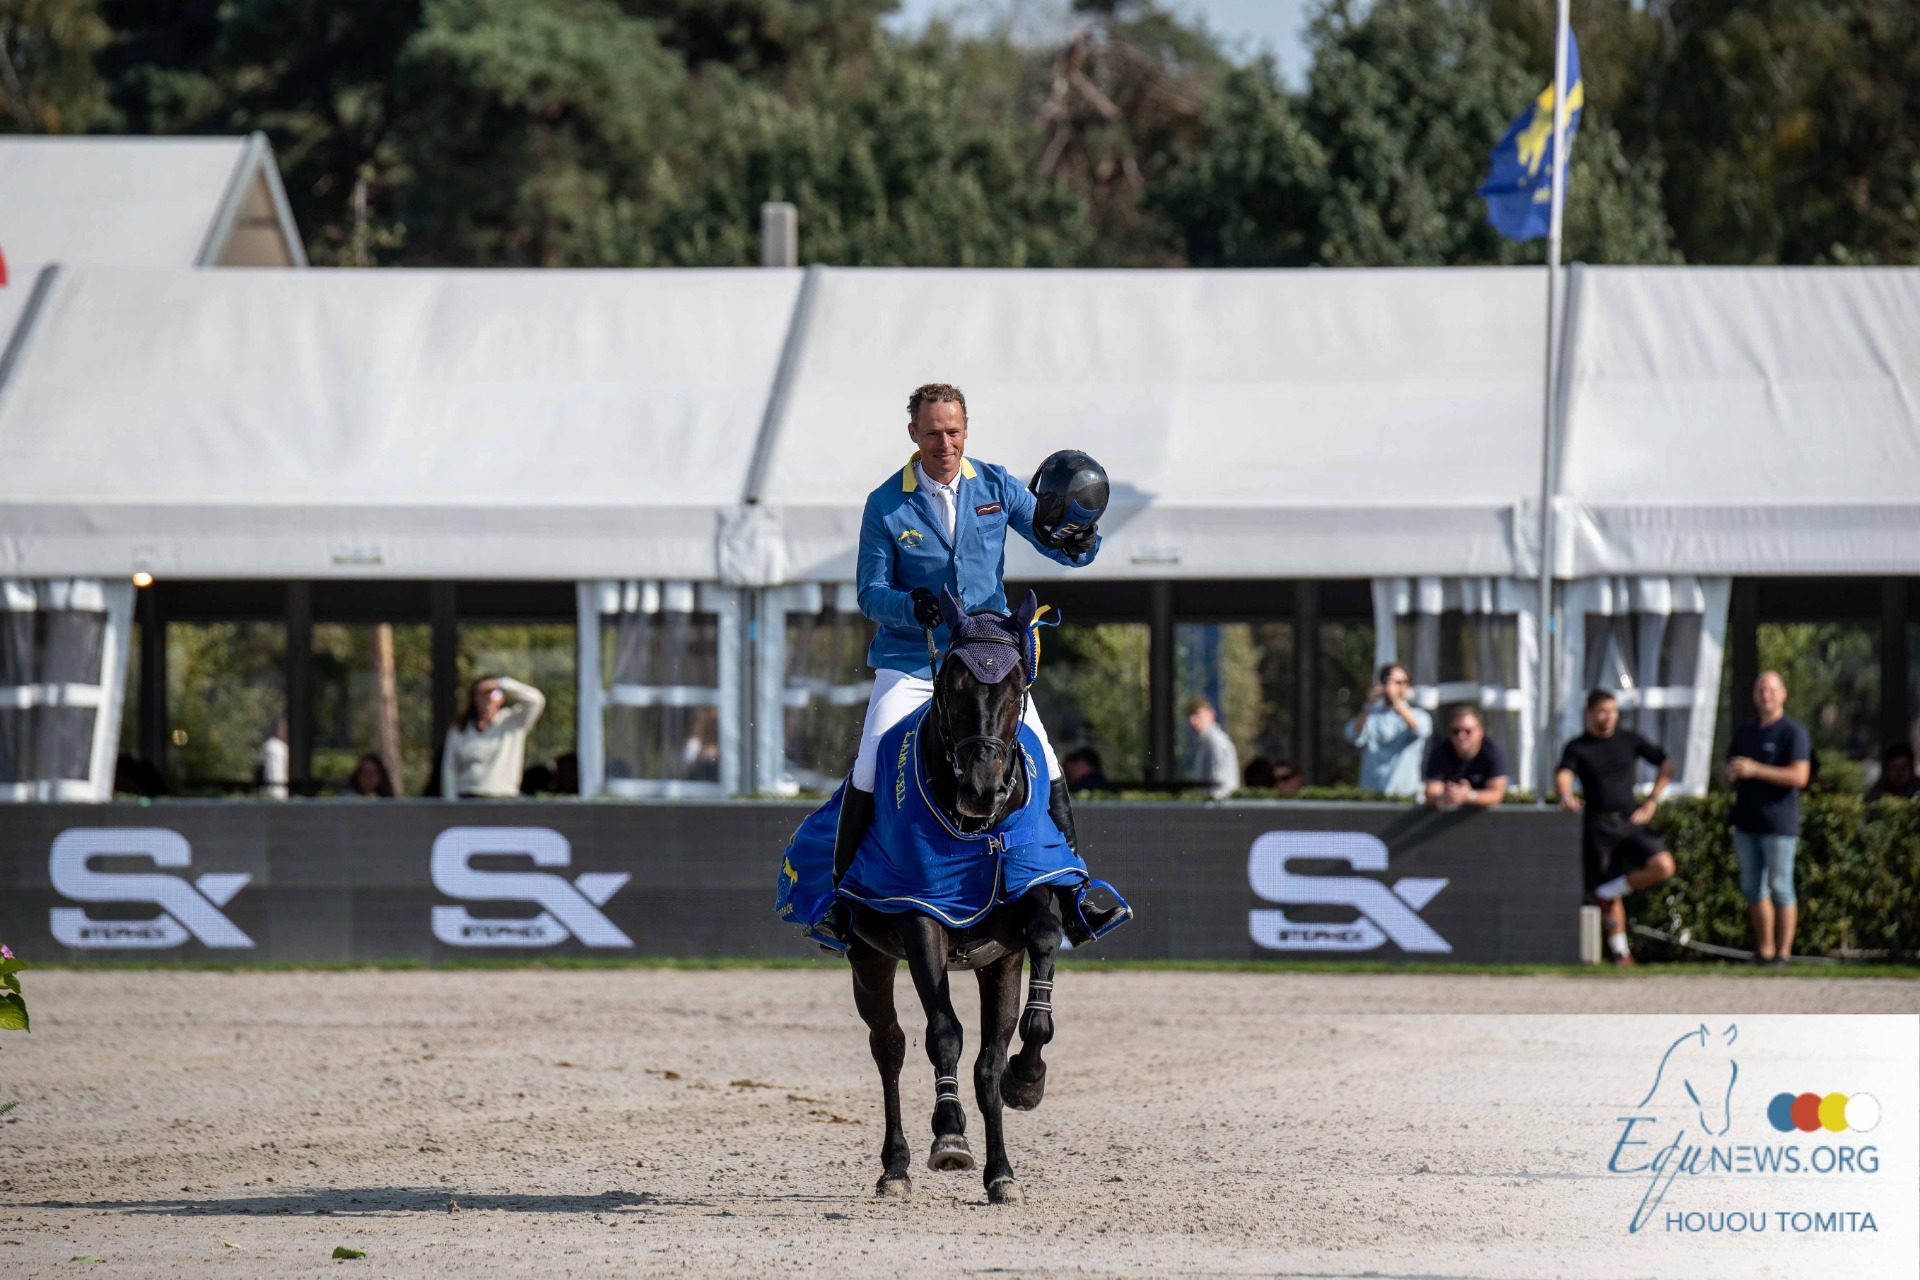 Christian Ahlmann and Querido VG are the new World Champions in the 5-year olds!